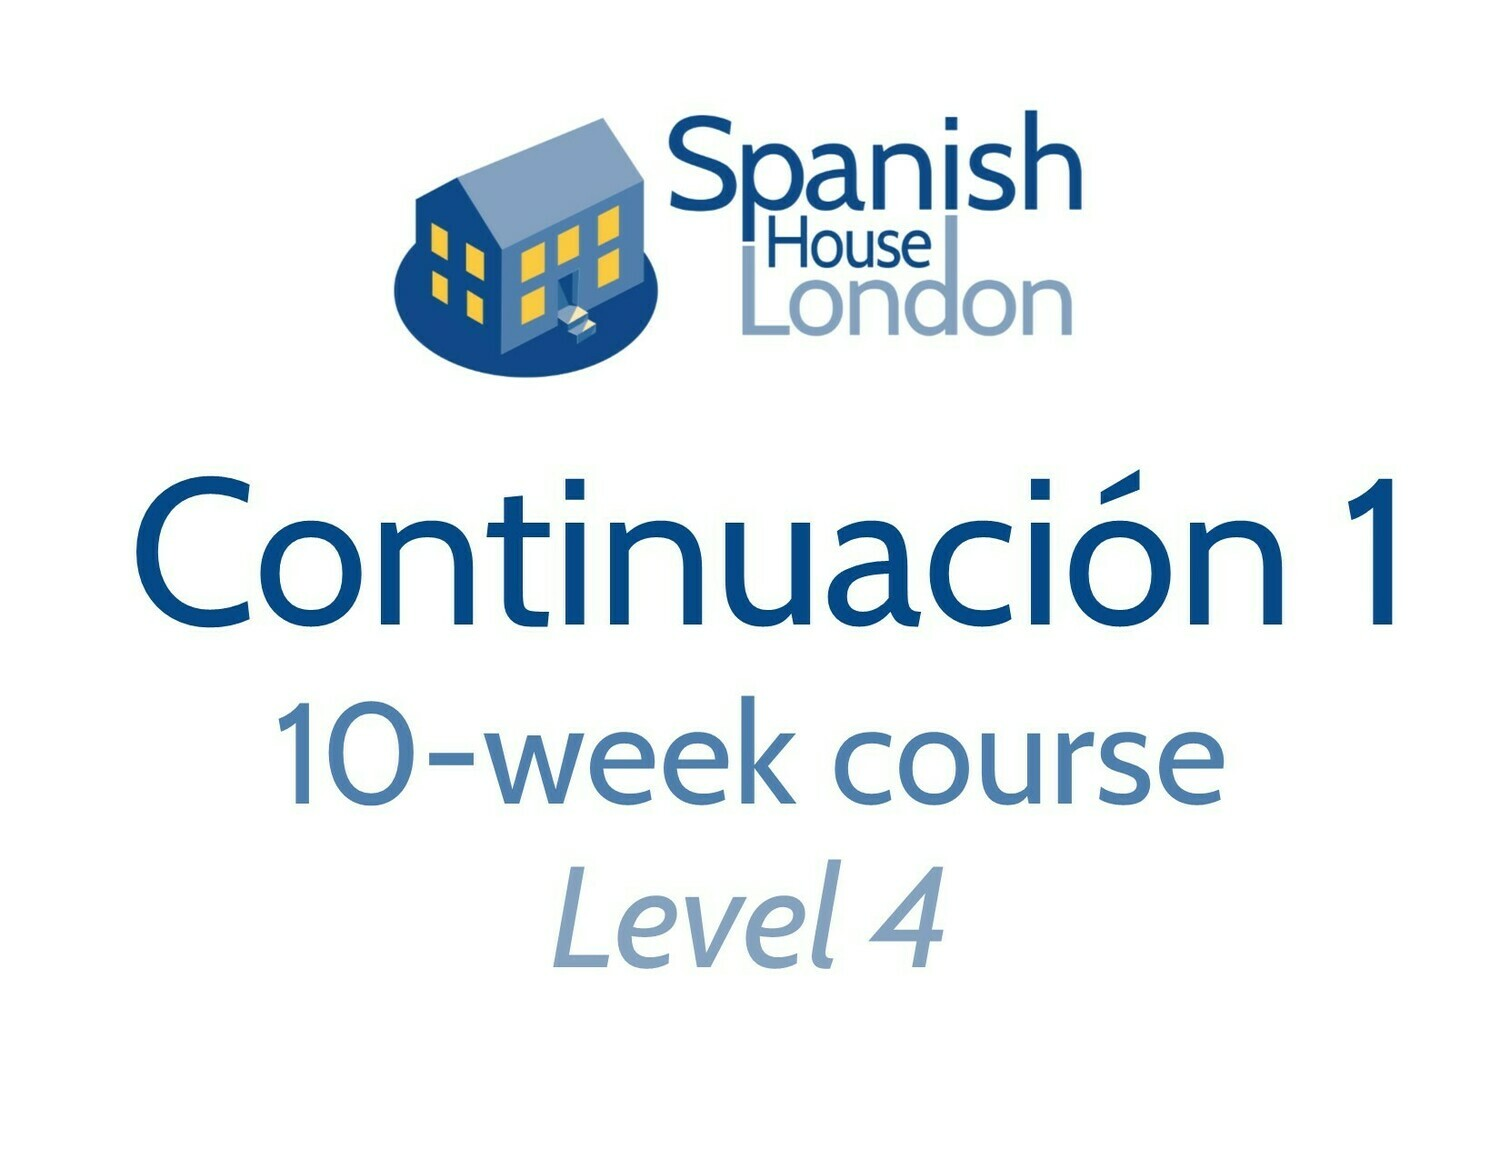 Continuacion 1 Five-Week Intensive Course starting on 21st July at 6pm